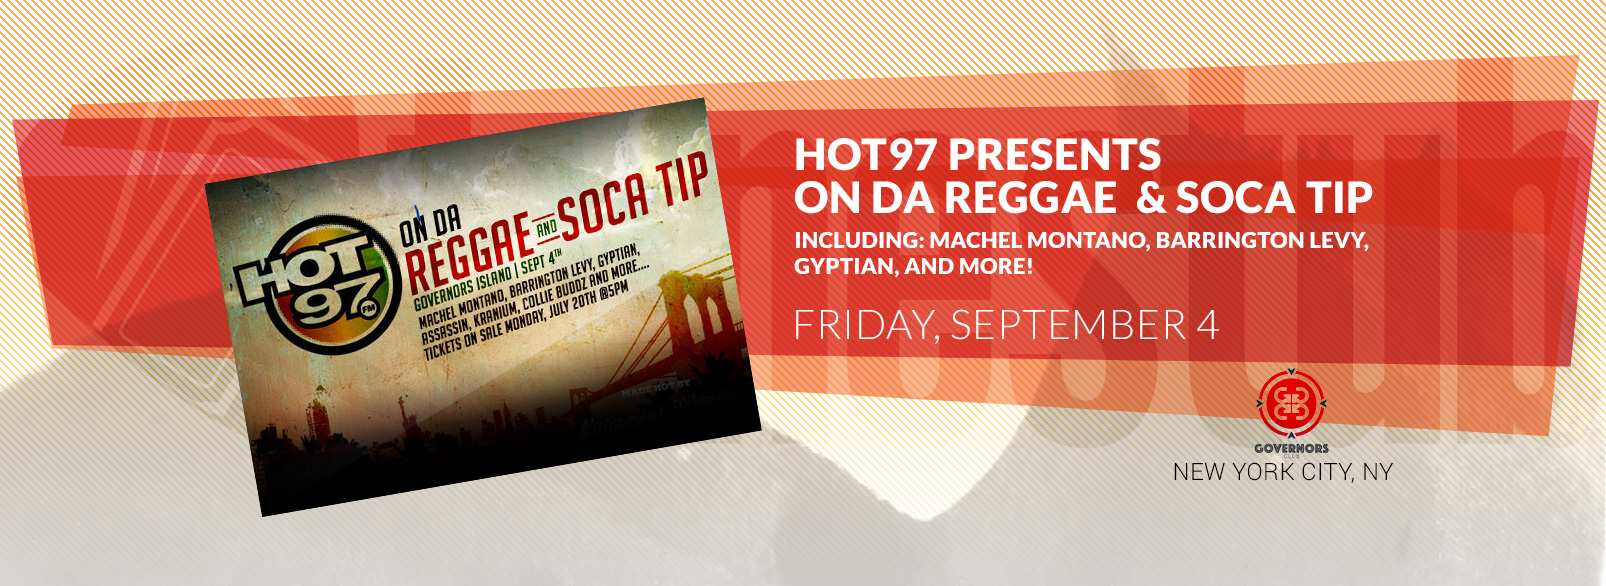 Hot 97 Presents On Da Reggae and Socca Tip